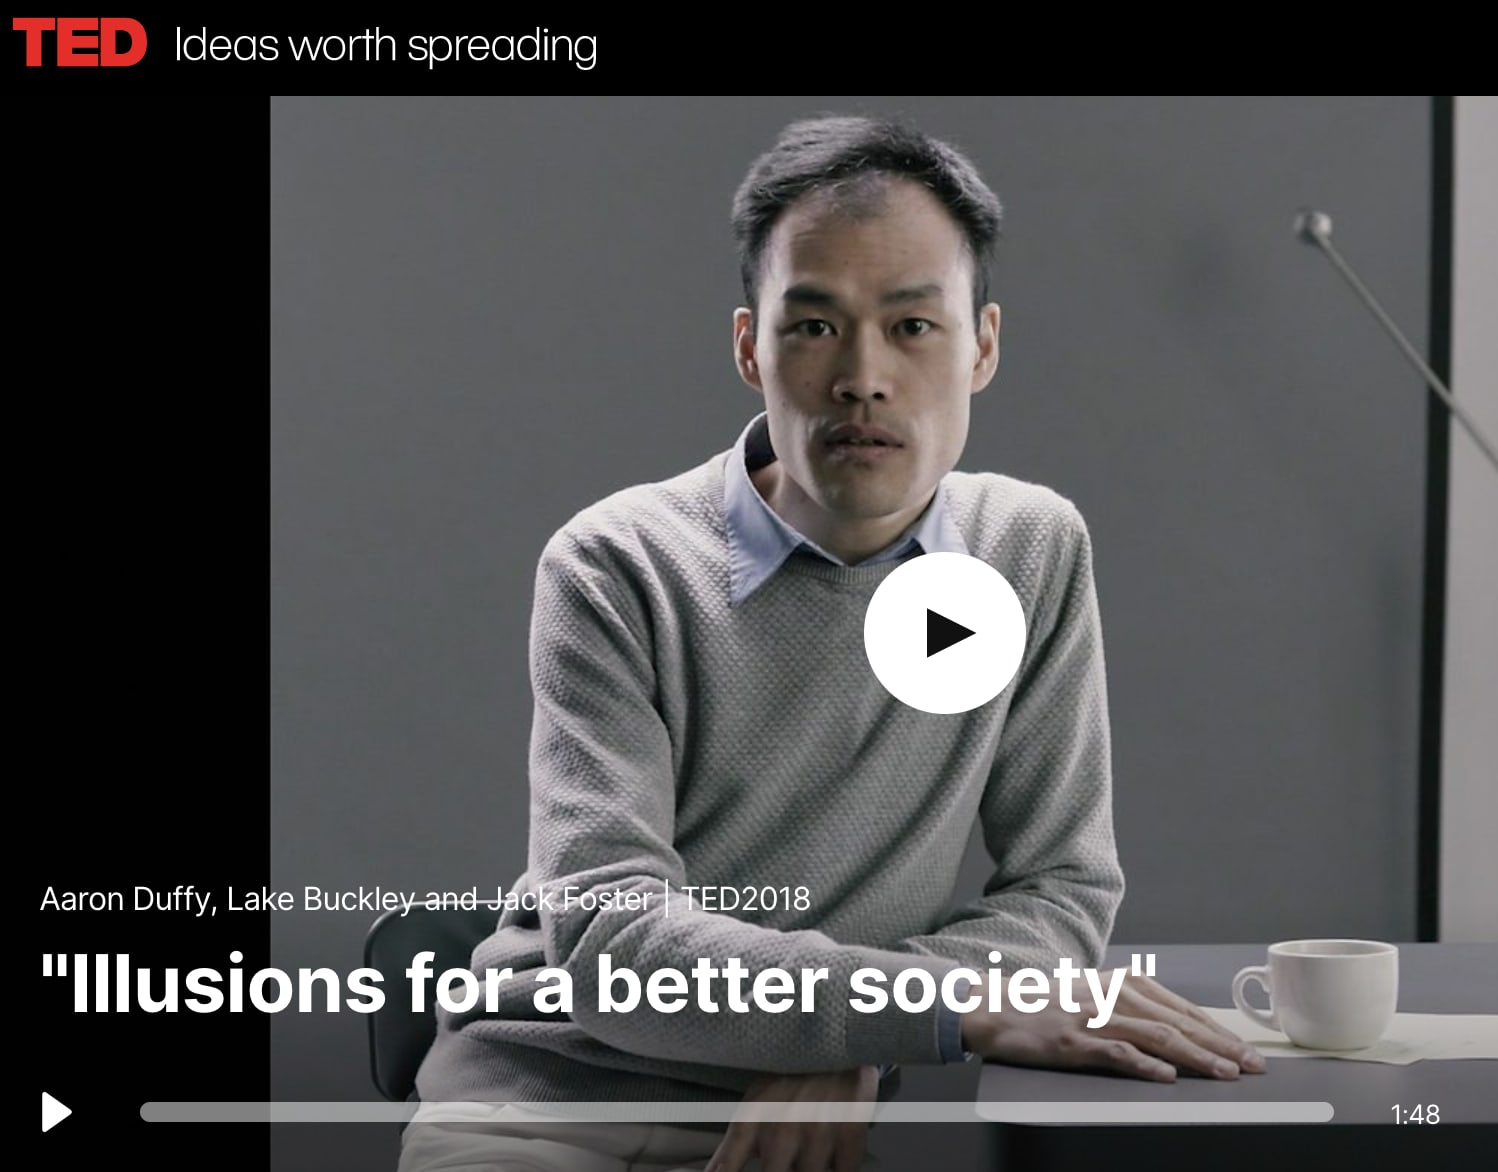 TED: Illusions For A Better Society (Video Piece)